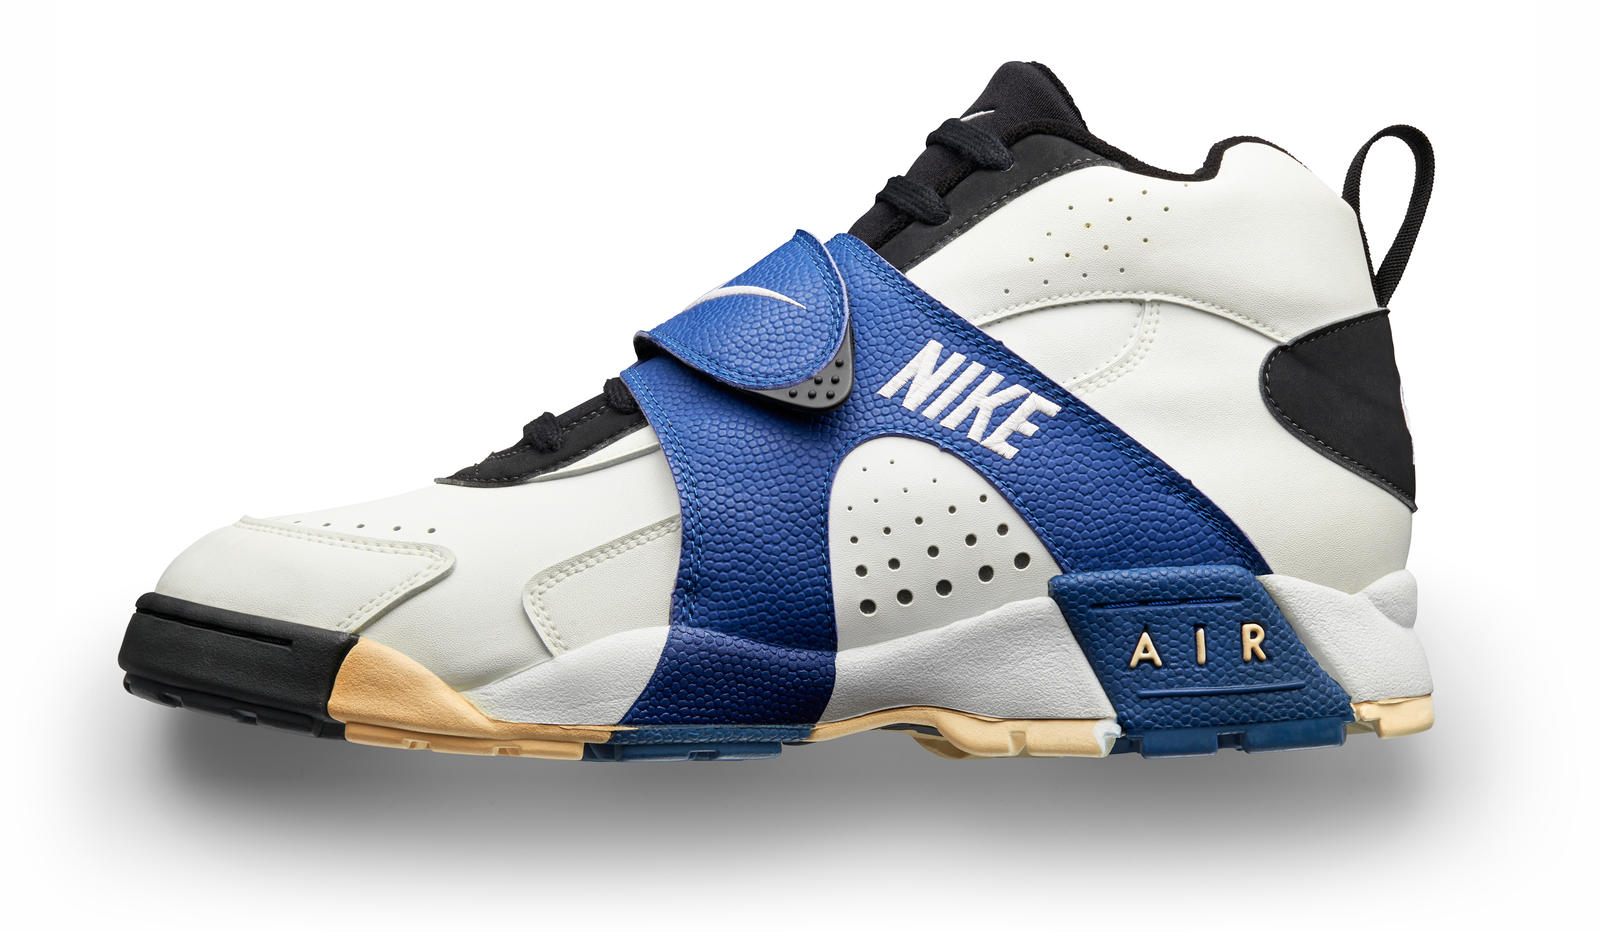 Nfl Nike Trainers Shoes